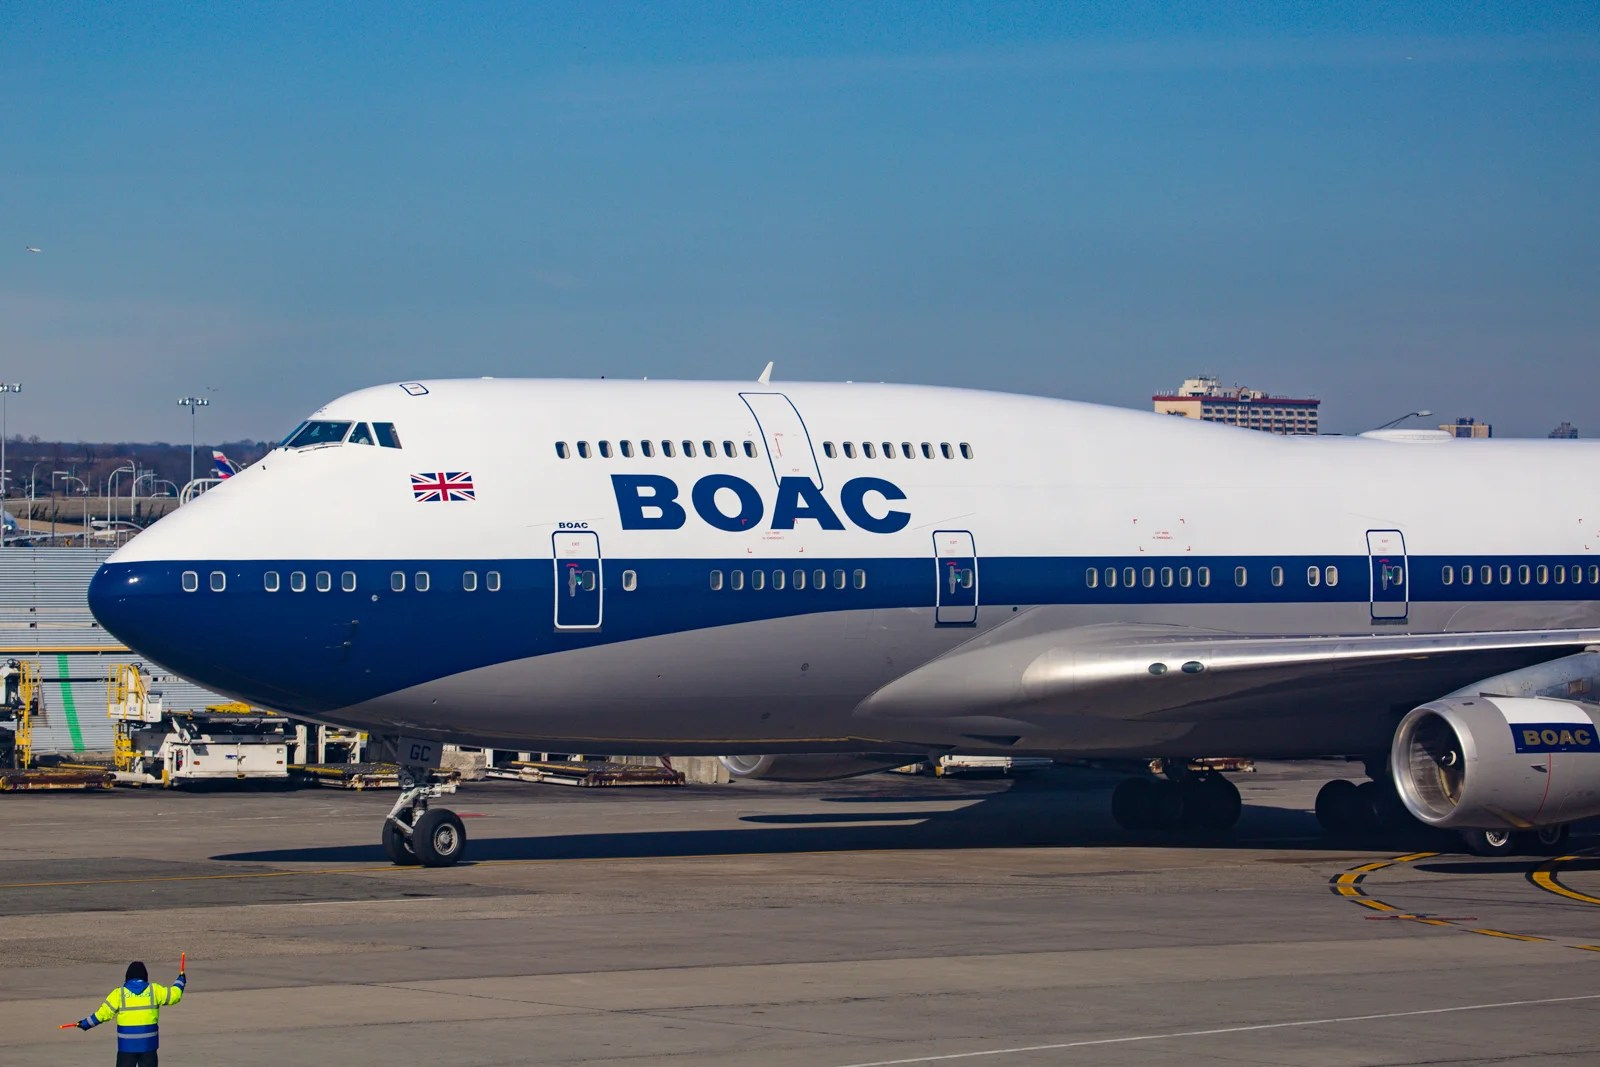 BOAC Lands in New York Again After 45 Years (Sort Of)